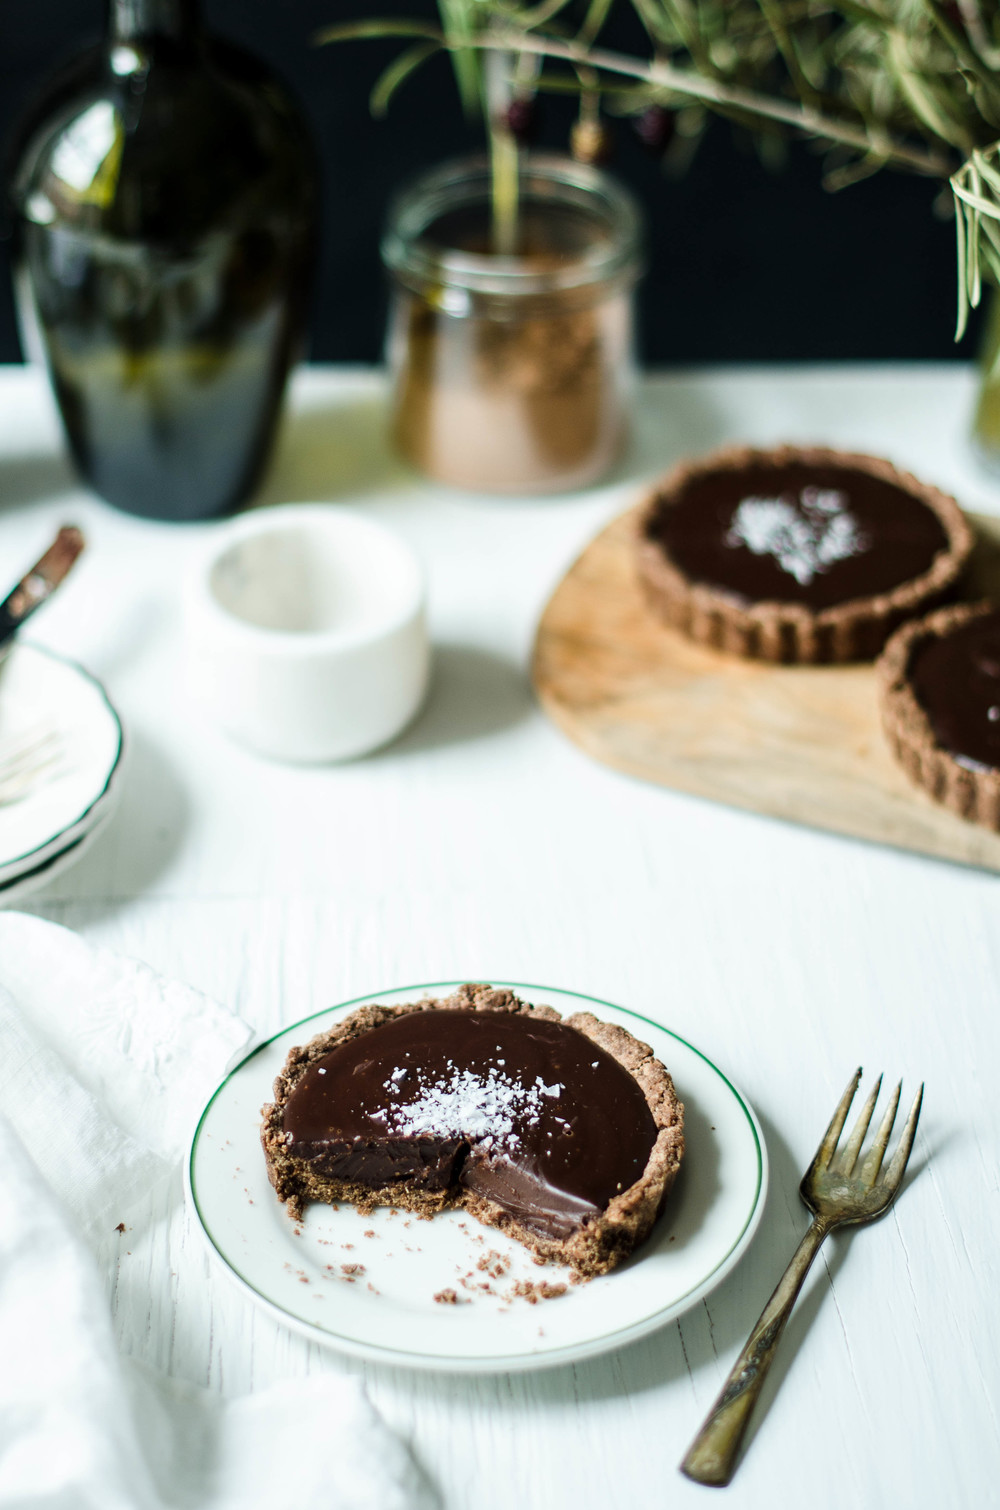 ROSE & IVY JOURNAL CHOCOLATE GANACHE TART